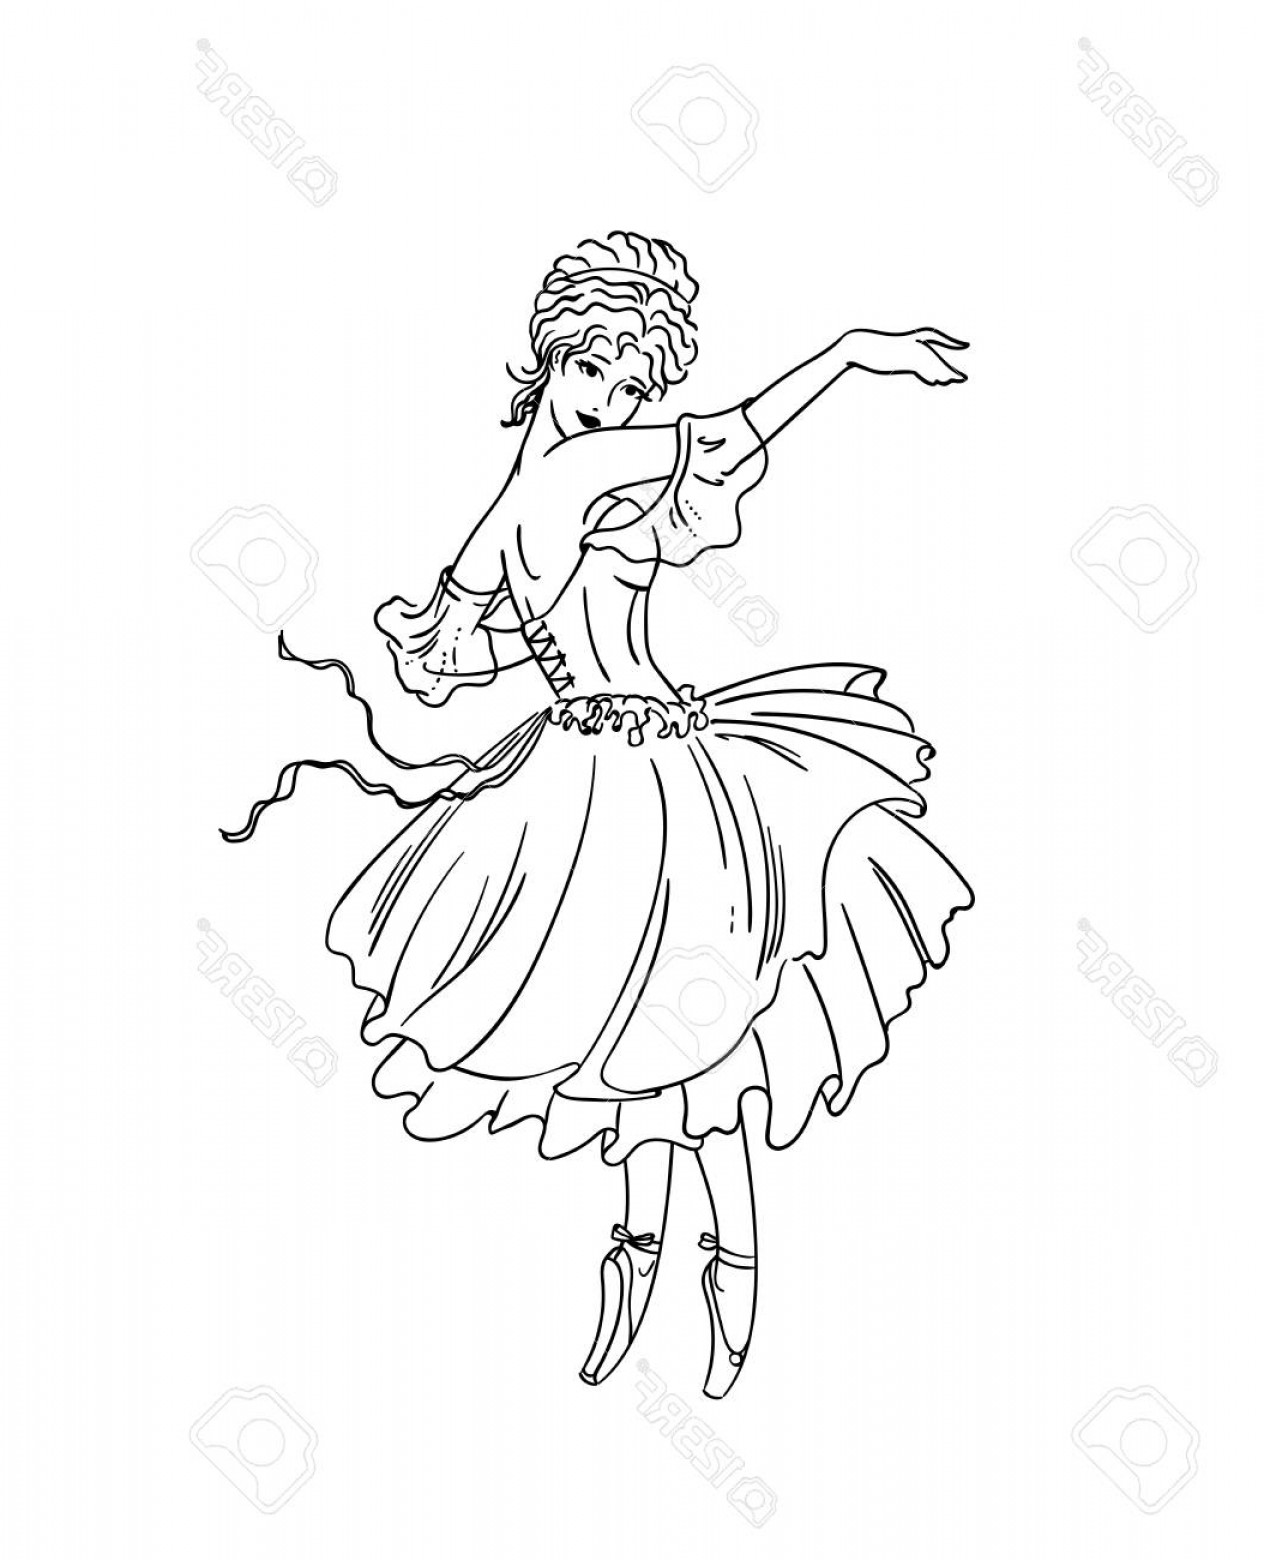 Belle EPS File Vector Art: Photostock Vector Vector Illustration Of Art Deco Ballerina Ballet Performance As A Shepherdess In La Belle Epoque St